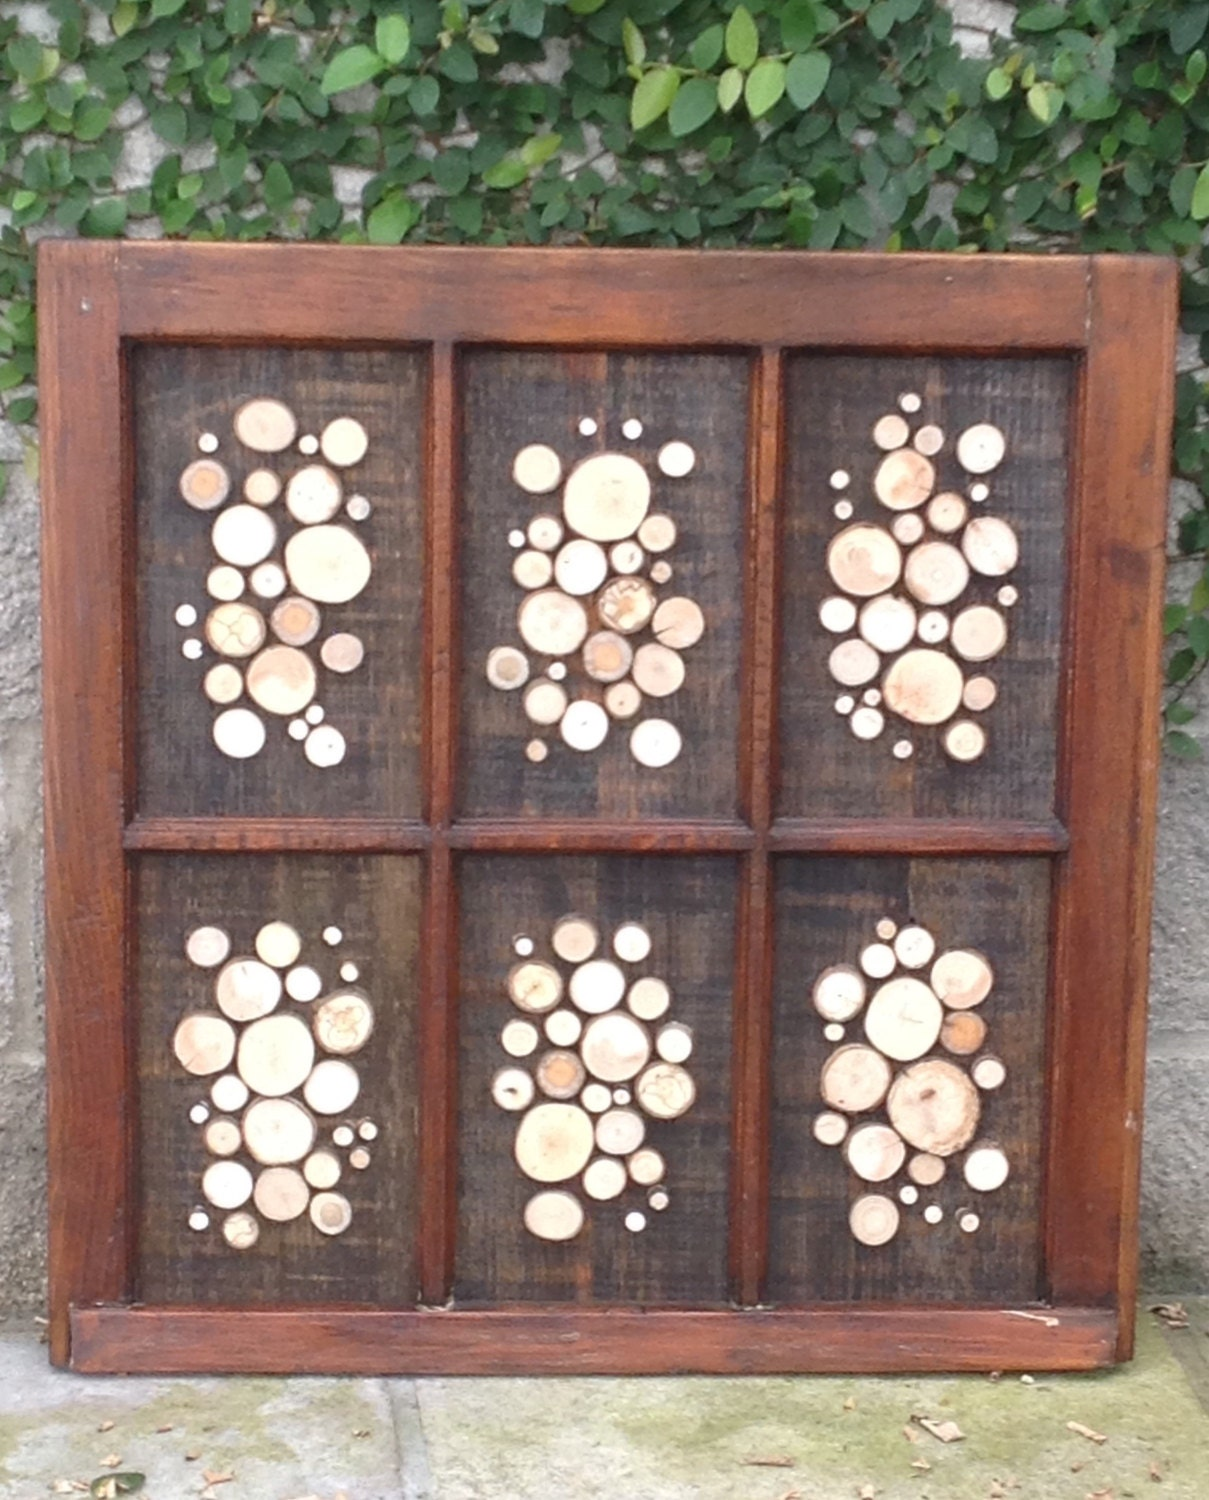 Rustic Window Frame Wall Decor : Rustic window frame with wood slices wall decor by